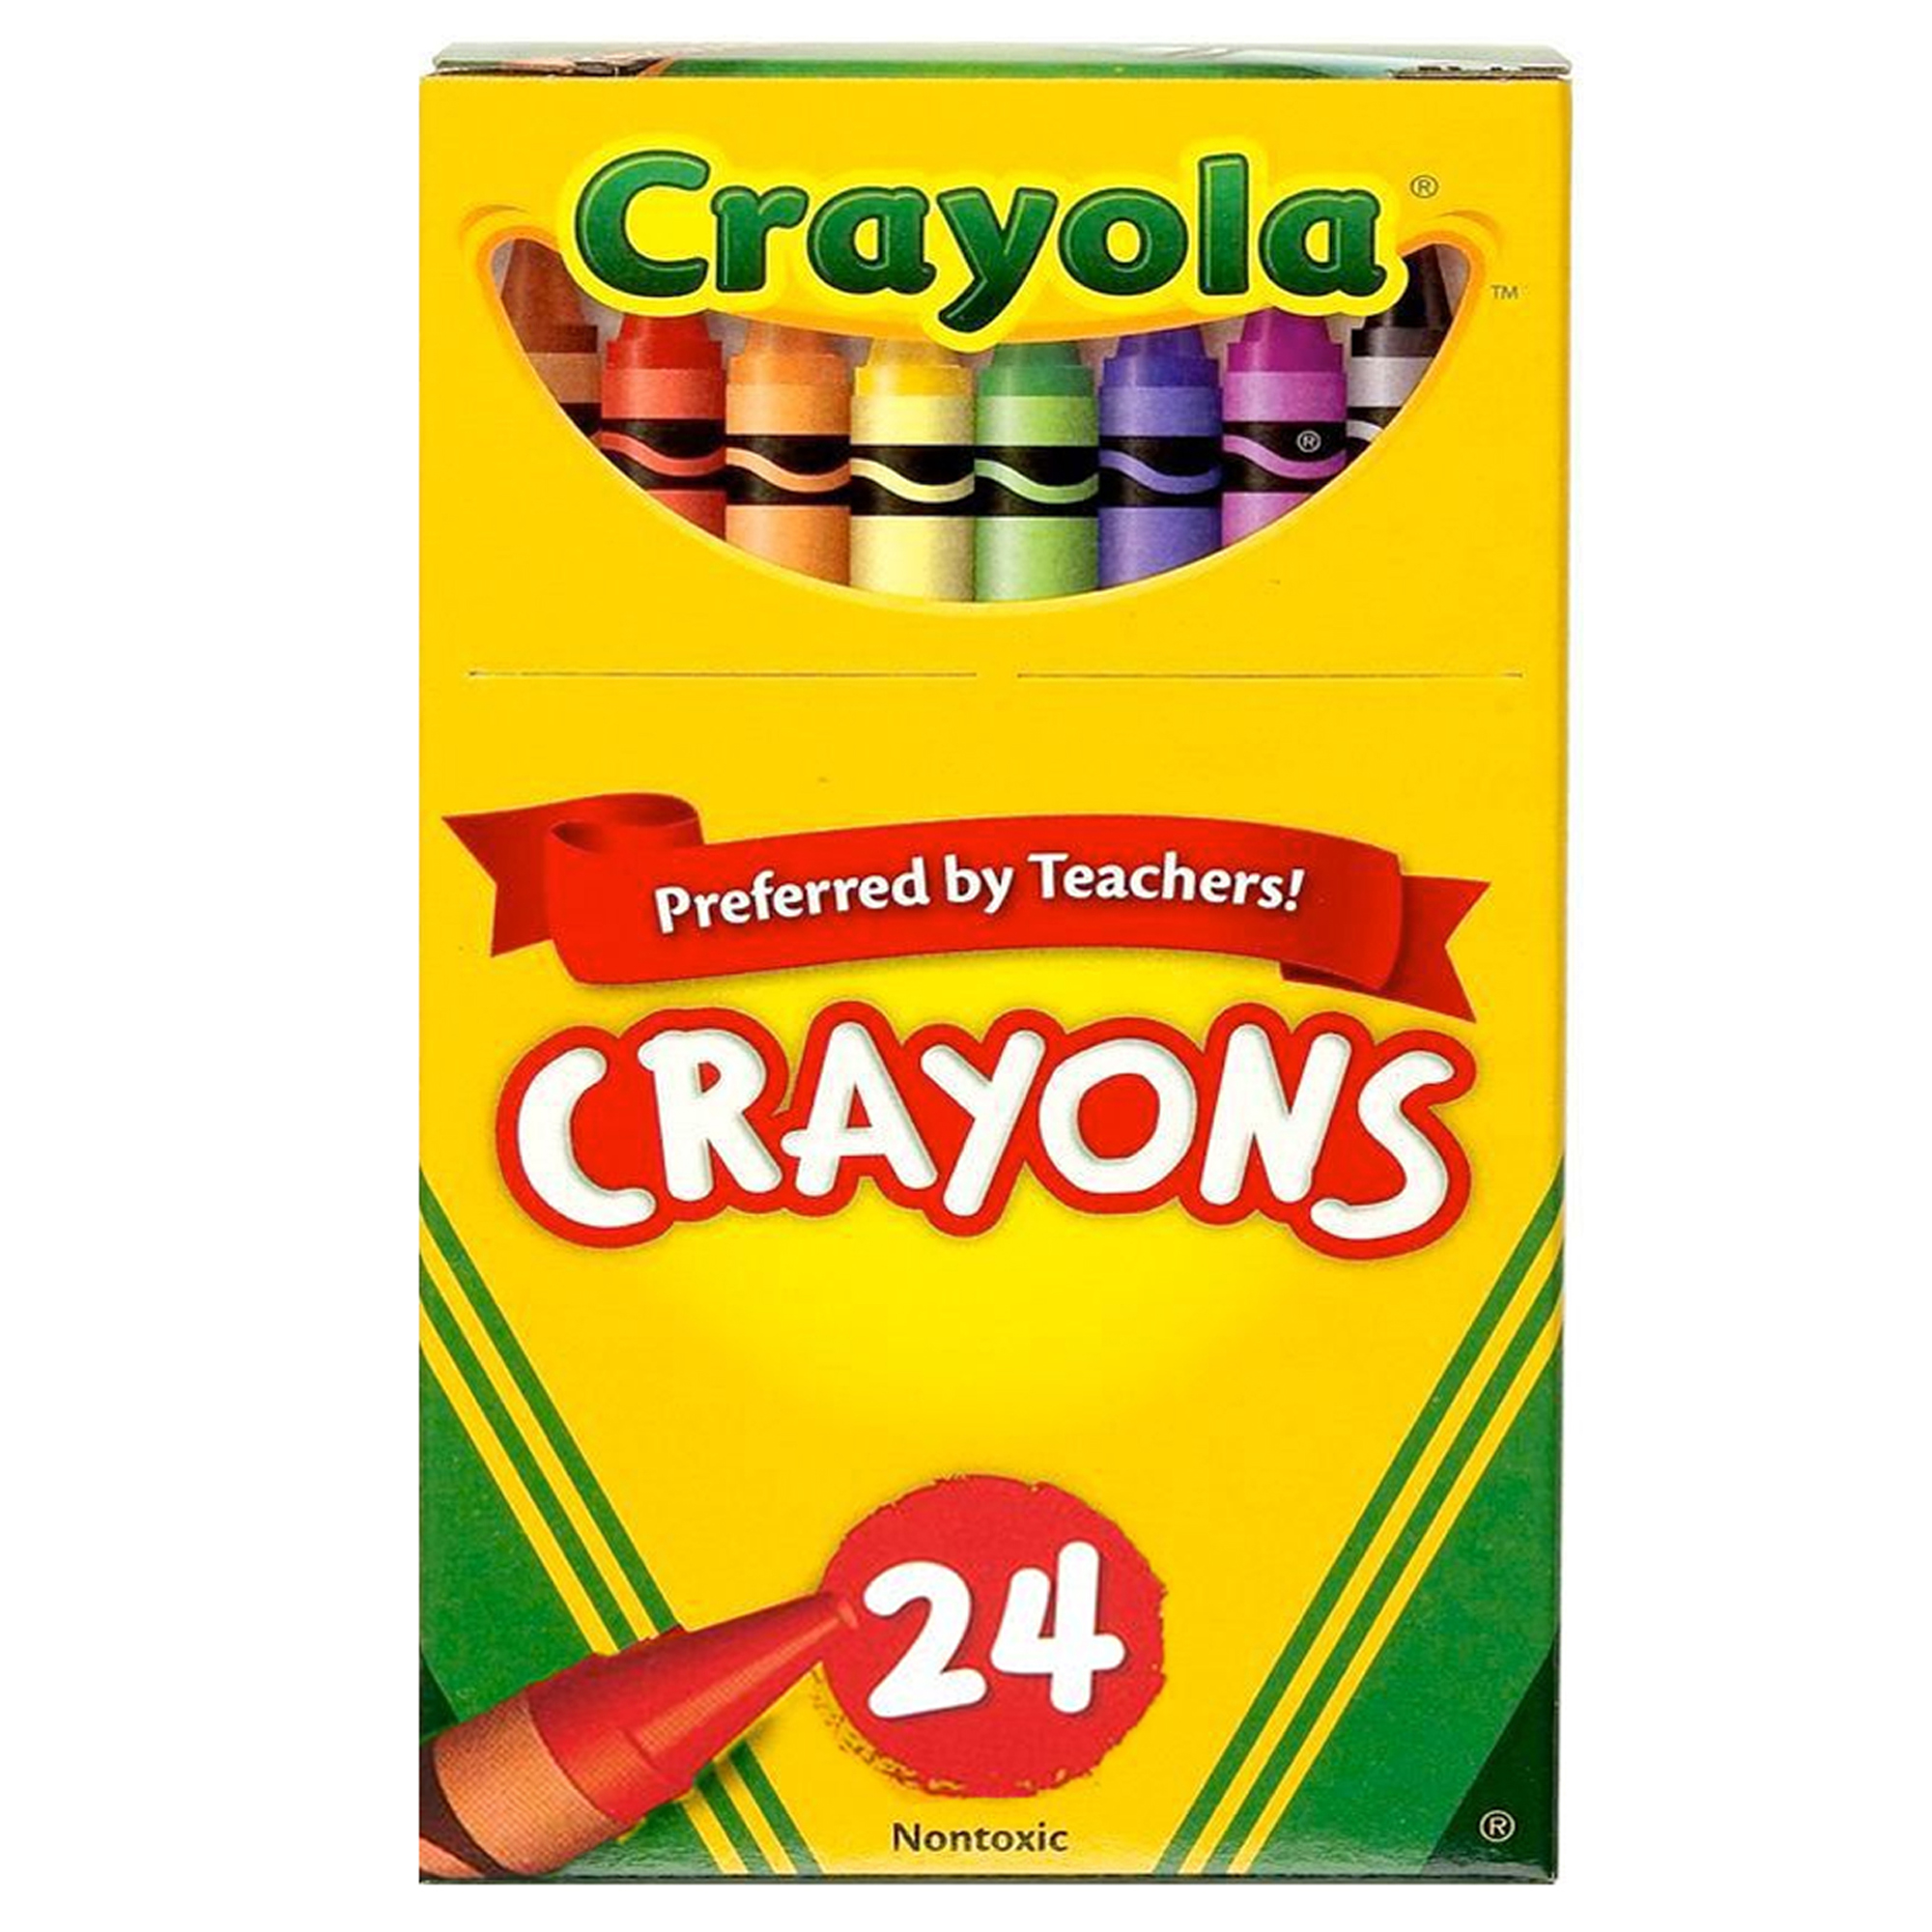 Crayola Crayons, Reg Size, 24 Colors Per Box, Set Of 12 Boxes